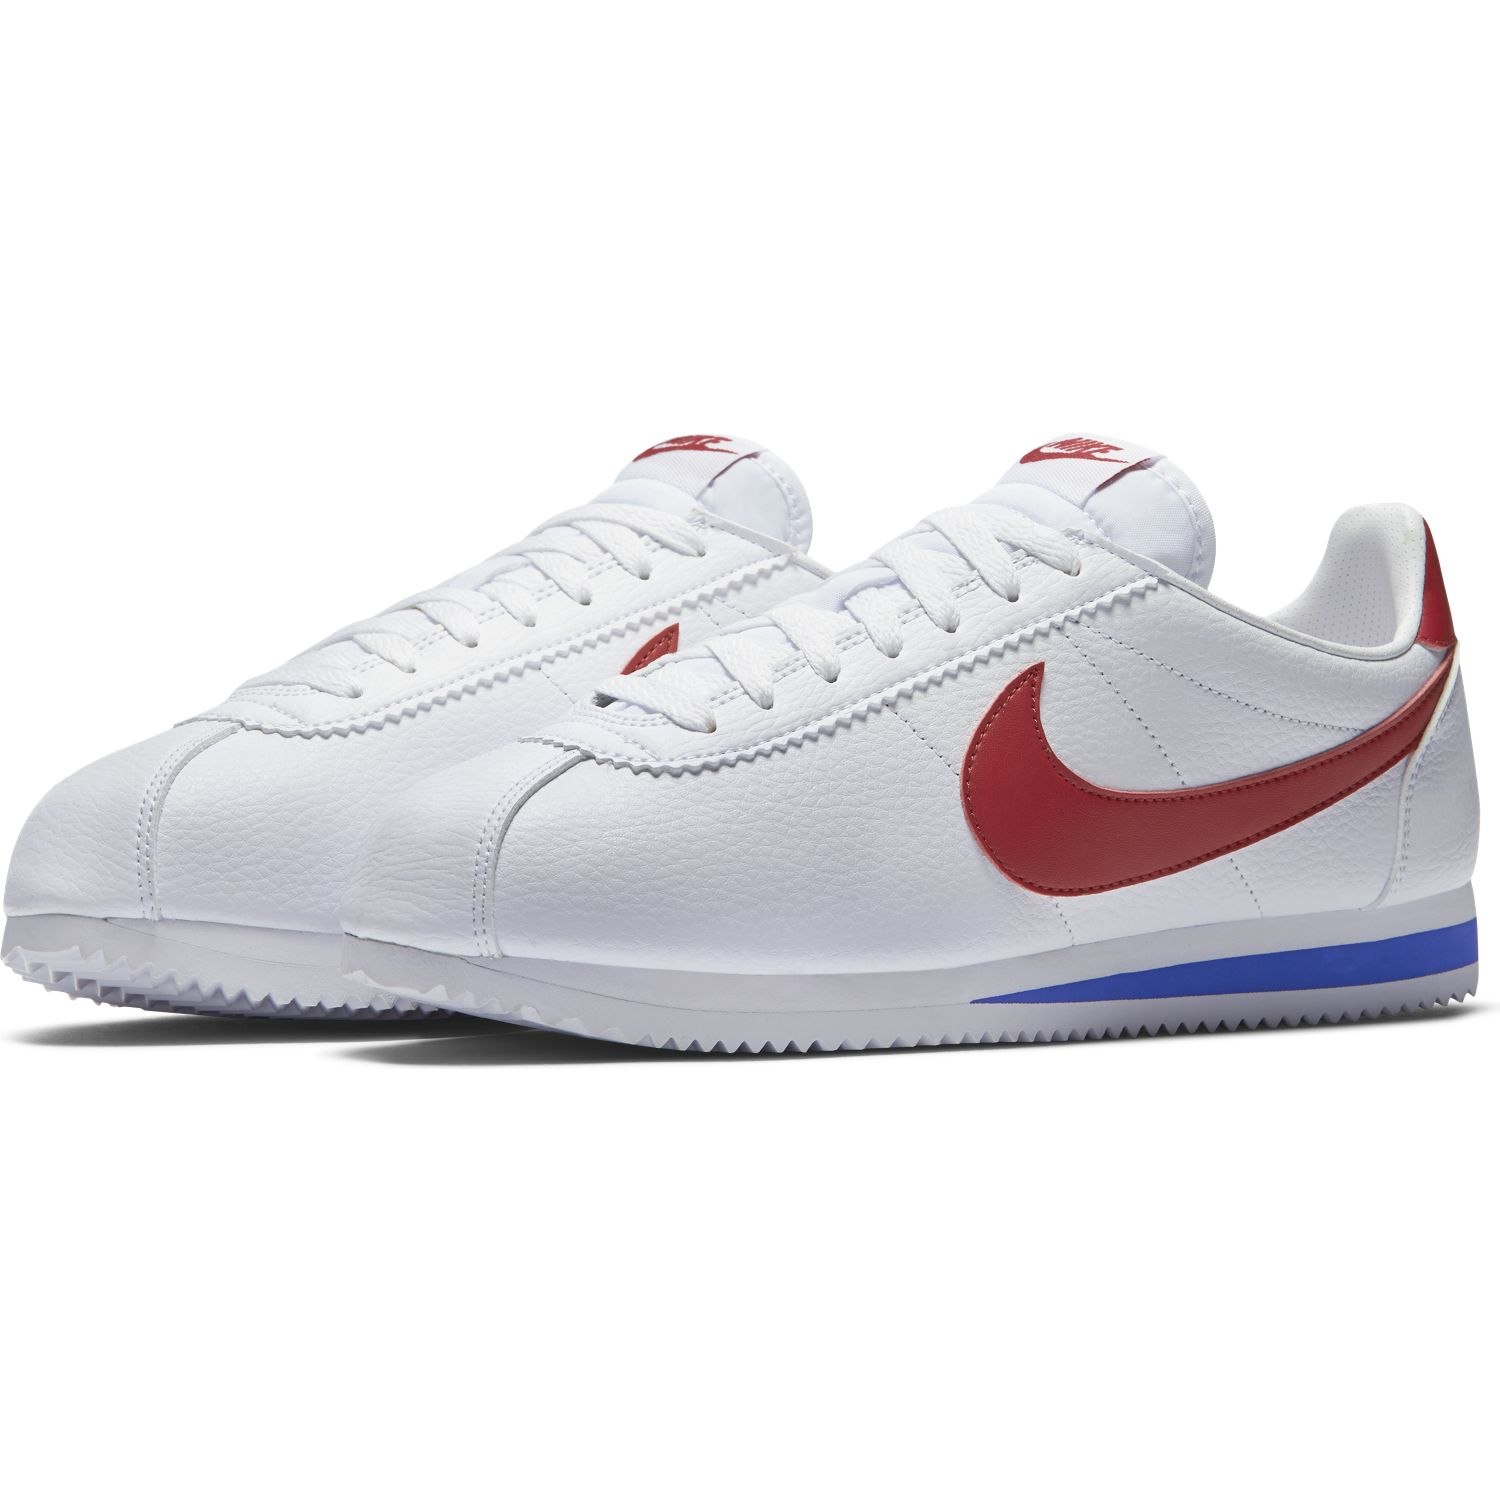 Nike New Shoes Forrest Gump Shoes